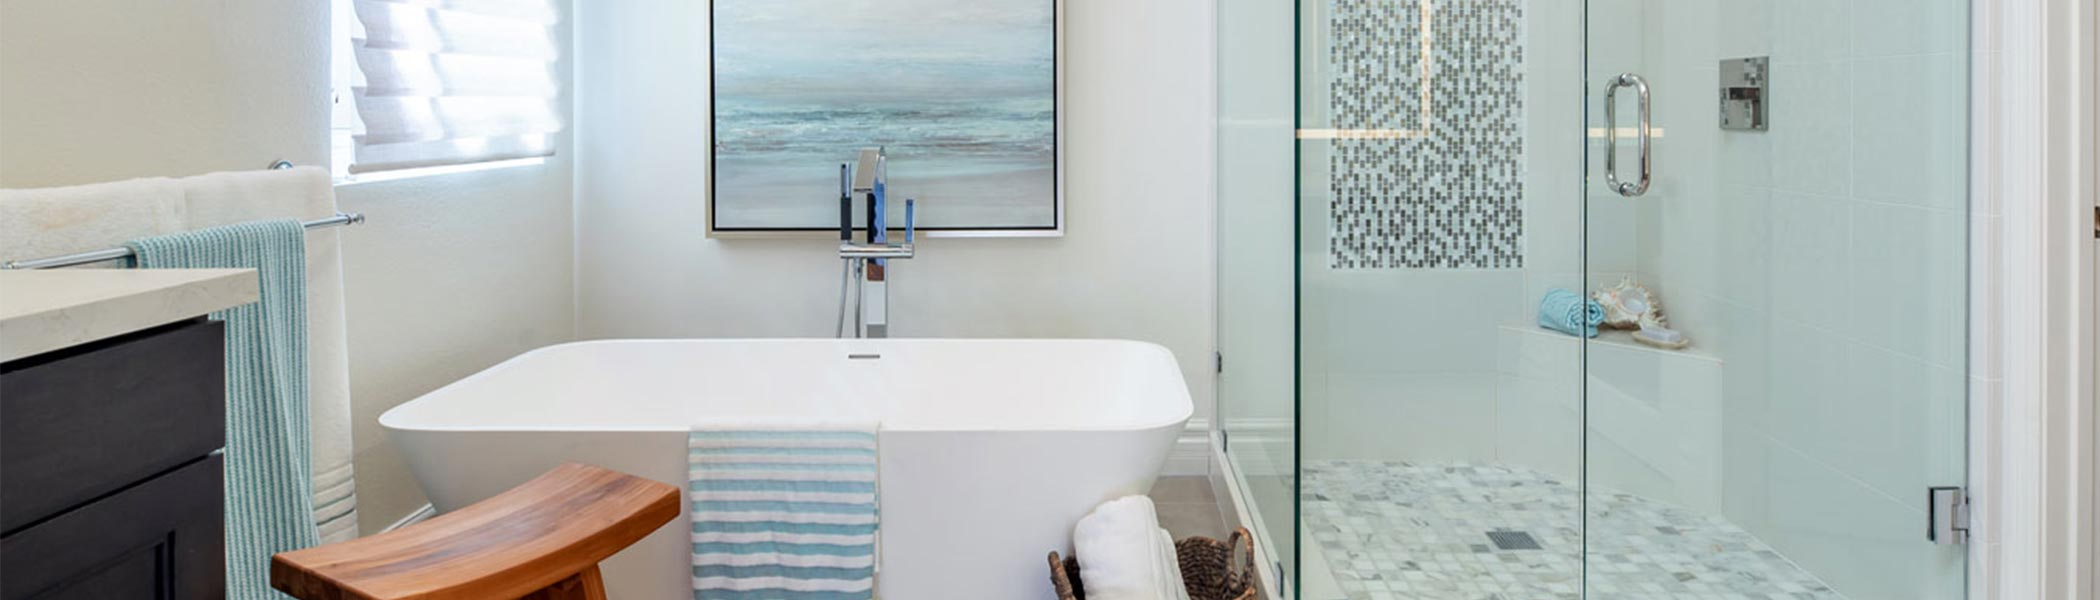 Bathroom Remodeling, Huntington Beach, Orange County, CA